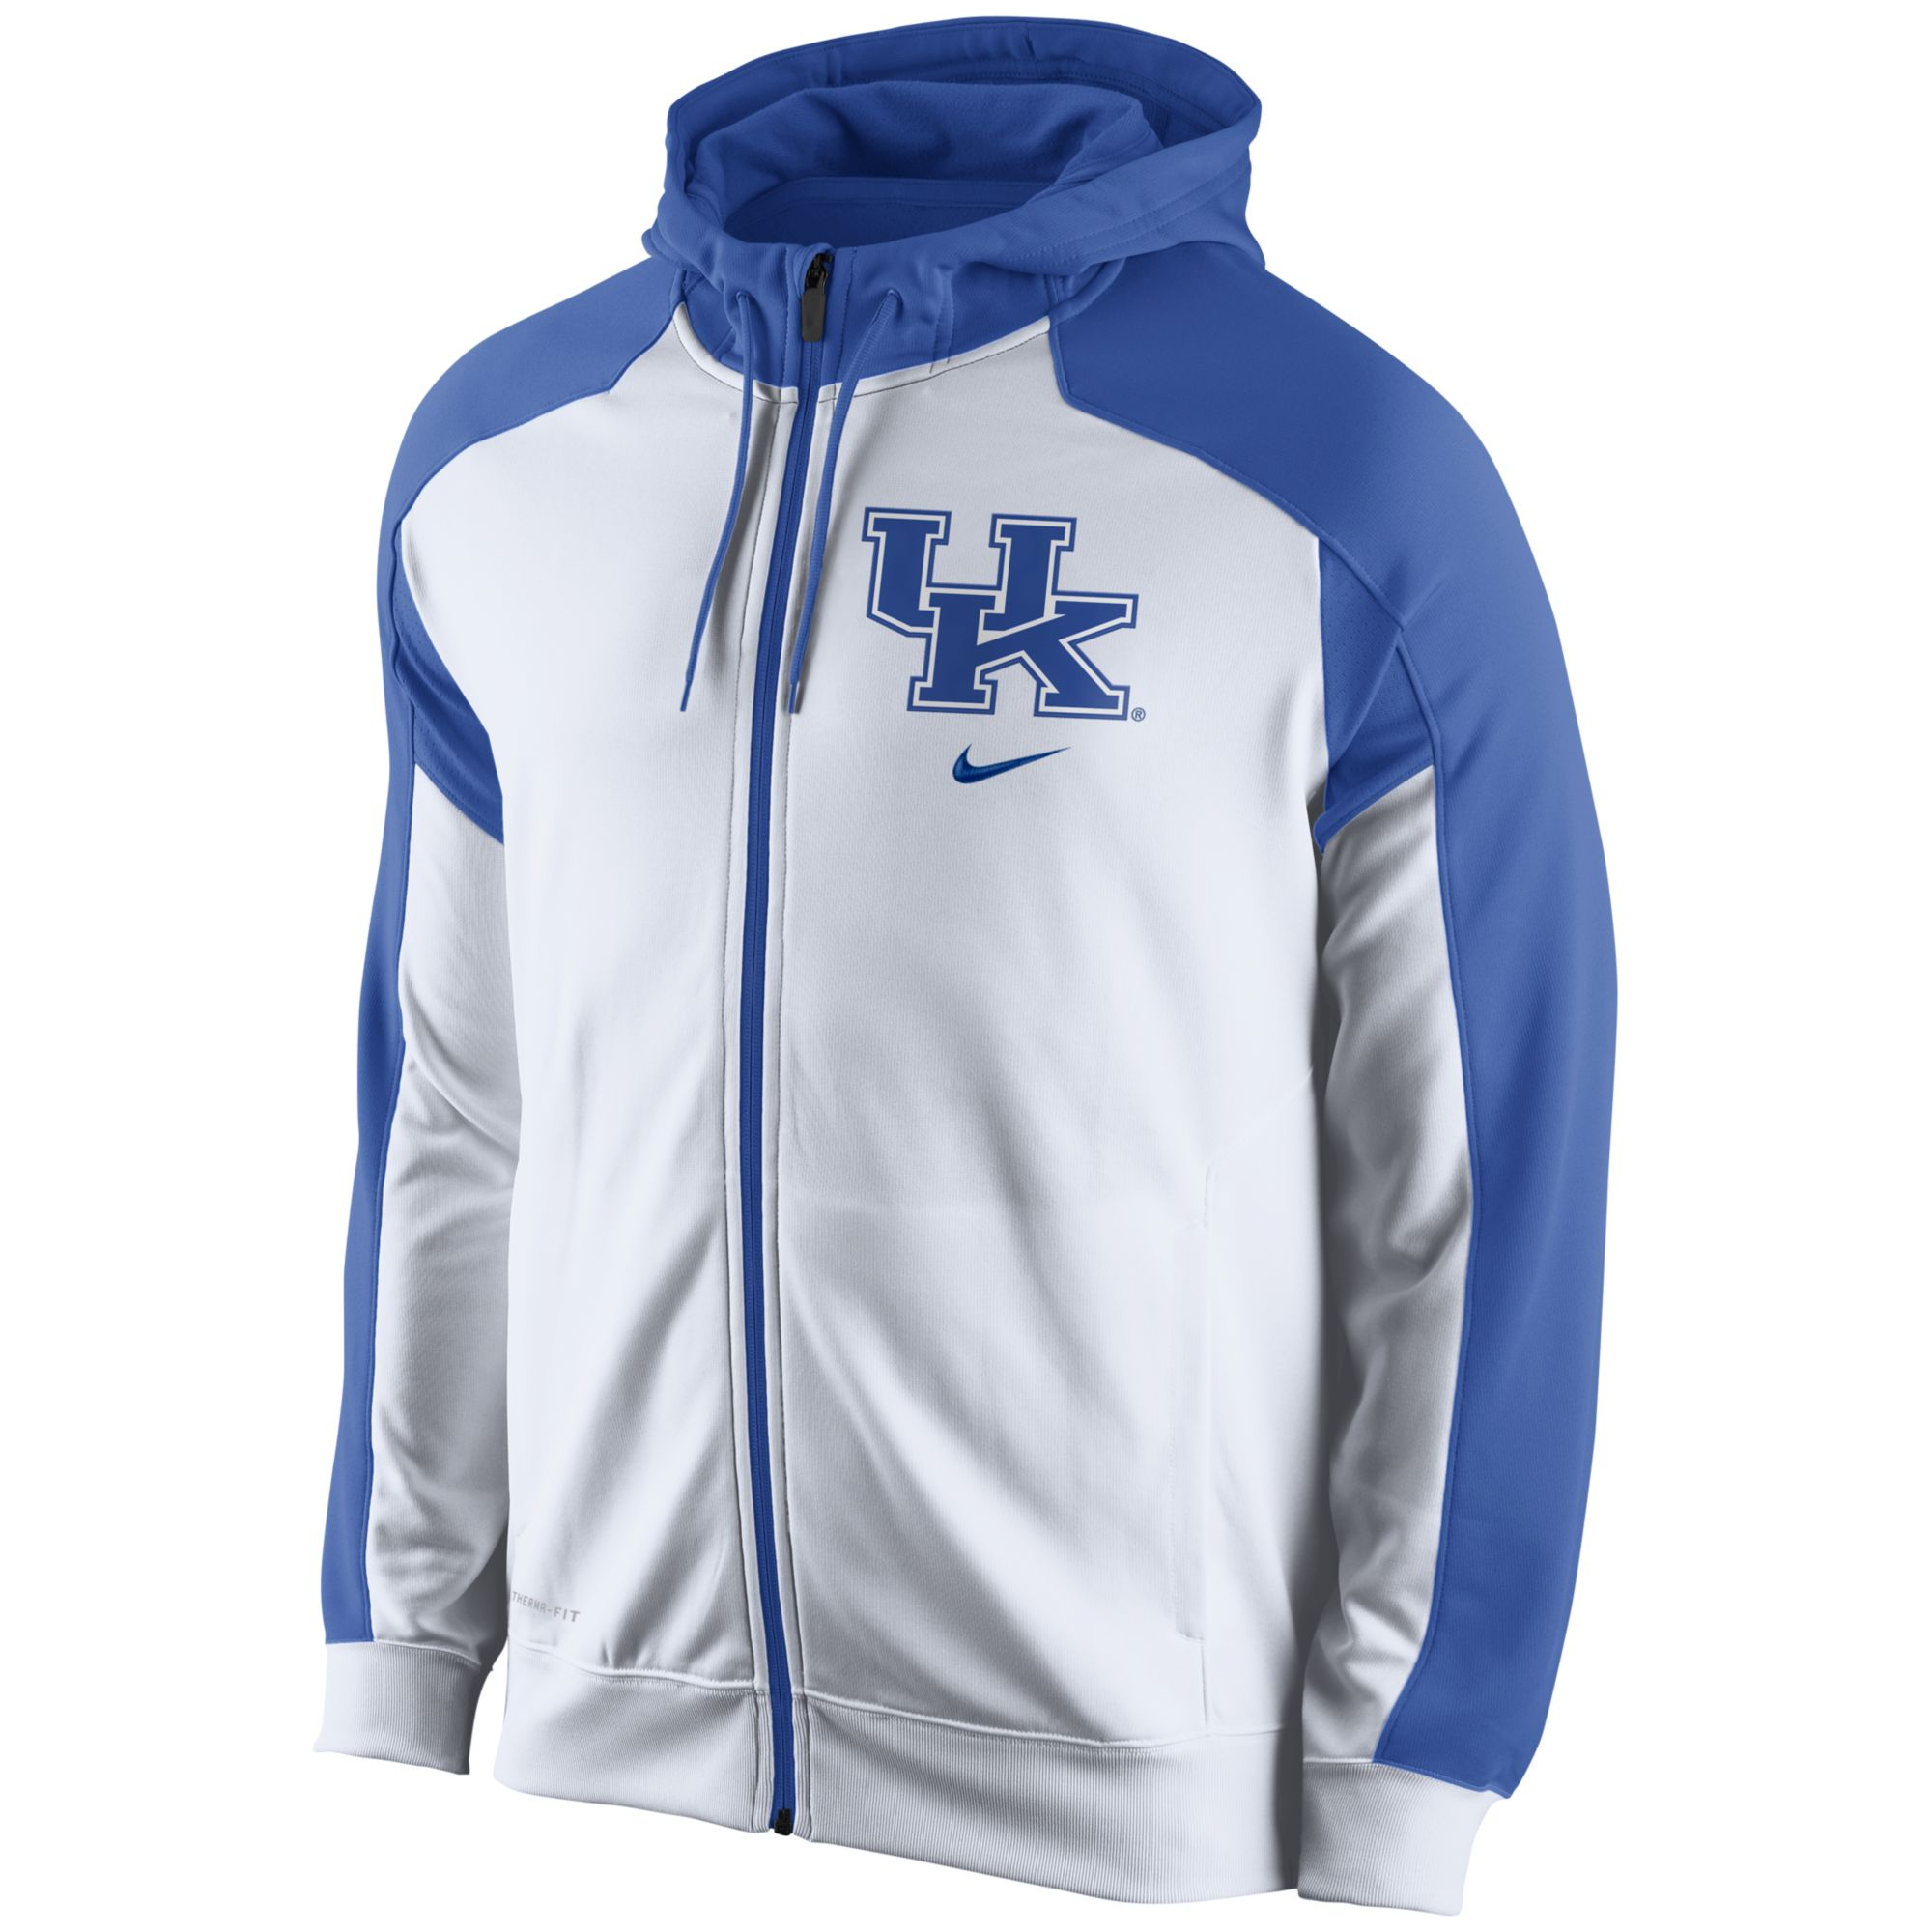 reputable site 44abe cadeb Kentucky Basketball Gear Nike | Toffee Art